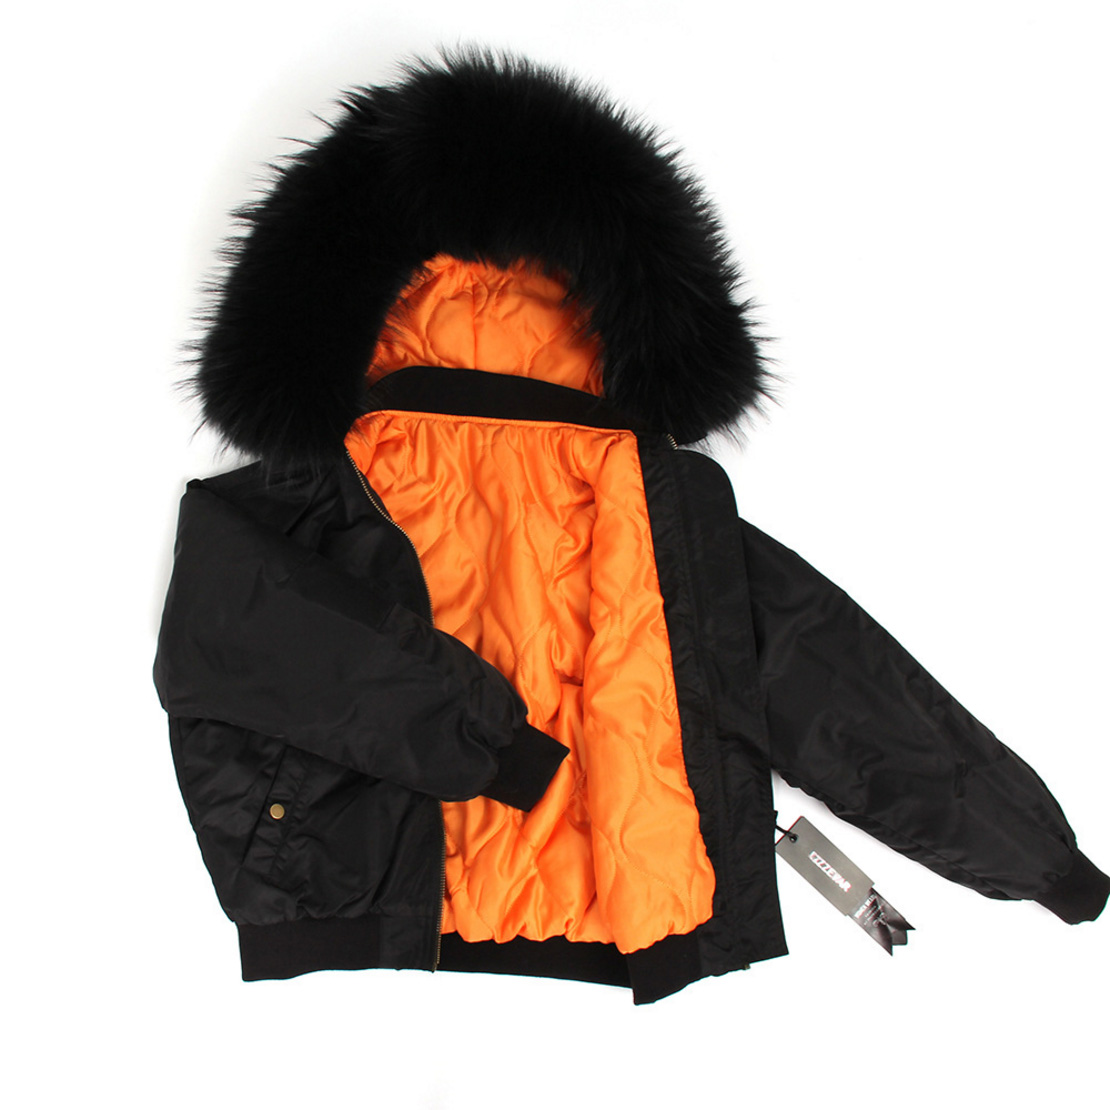 Raccoon Fur Trimmed Hooded Cotton-padded Jacket 129 Details 12